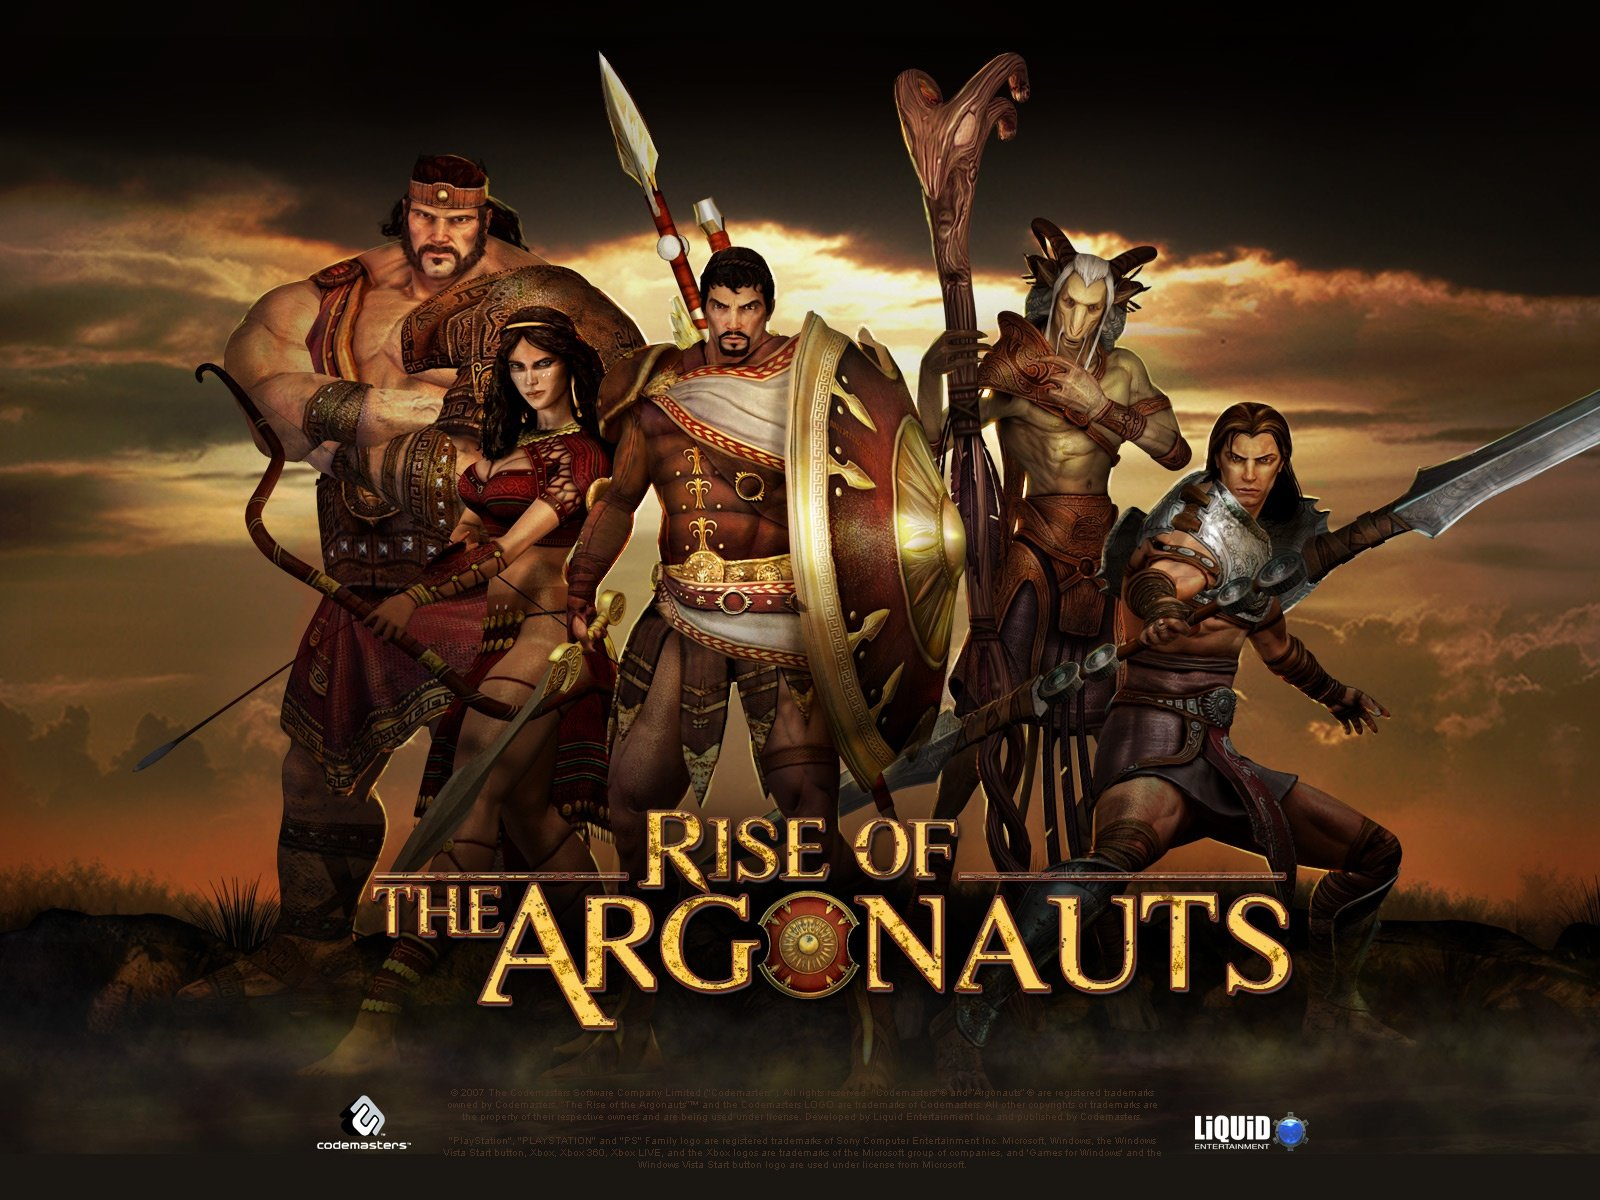 8.-Rise-of-the-Argonauts